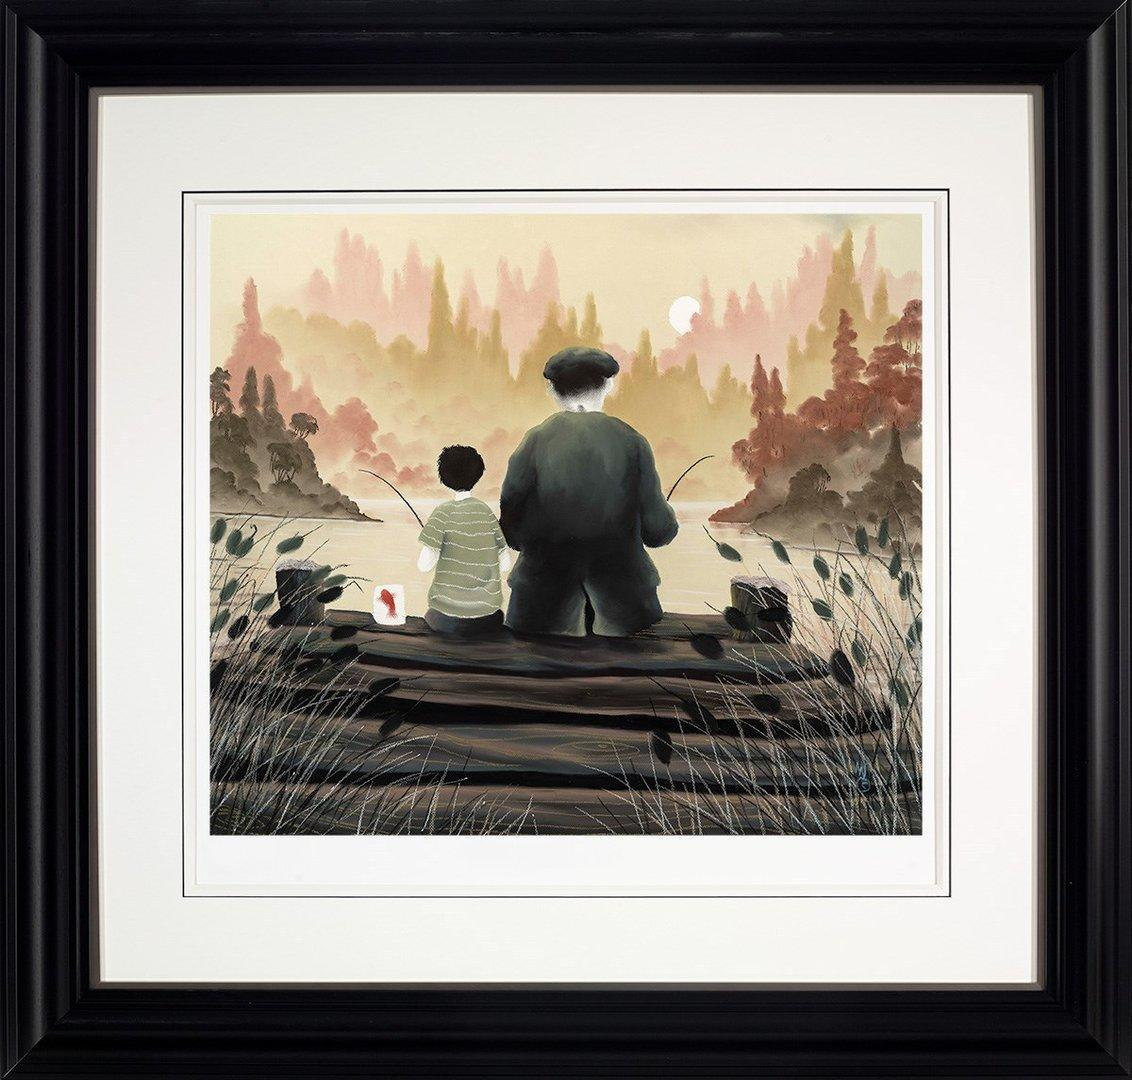 All Our Yesterdays by Mackenzie Thorpe - Limited Edition print LTHP031